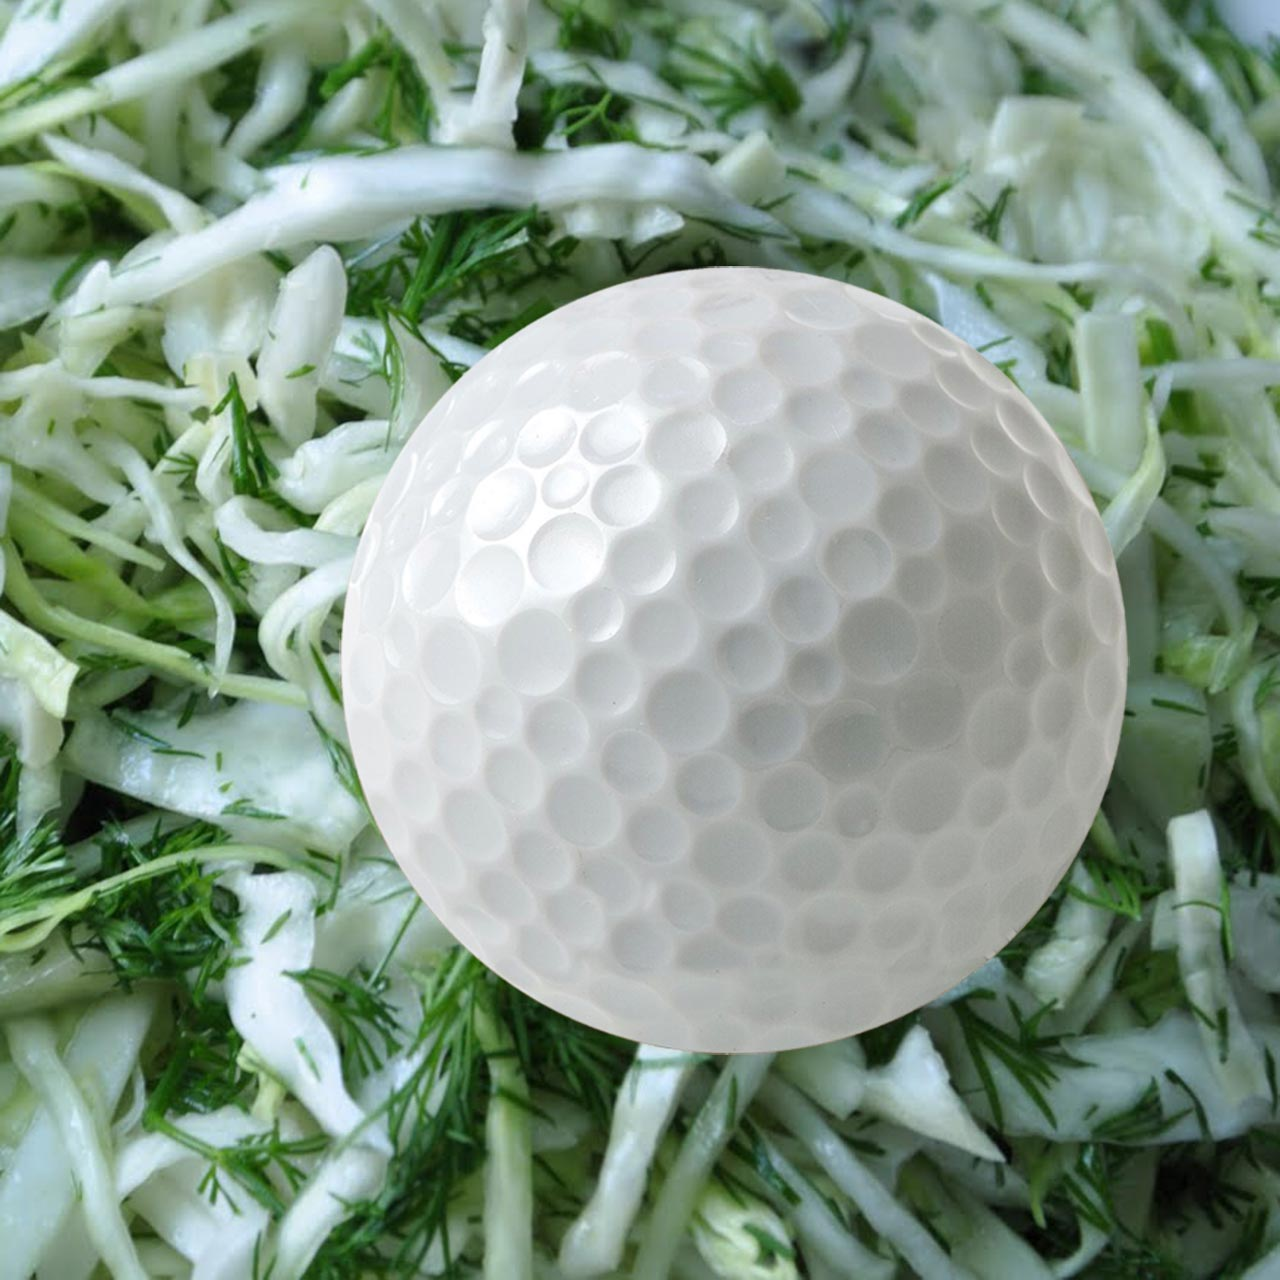 Rory McIlroy cole slaw bunker